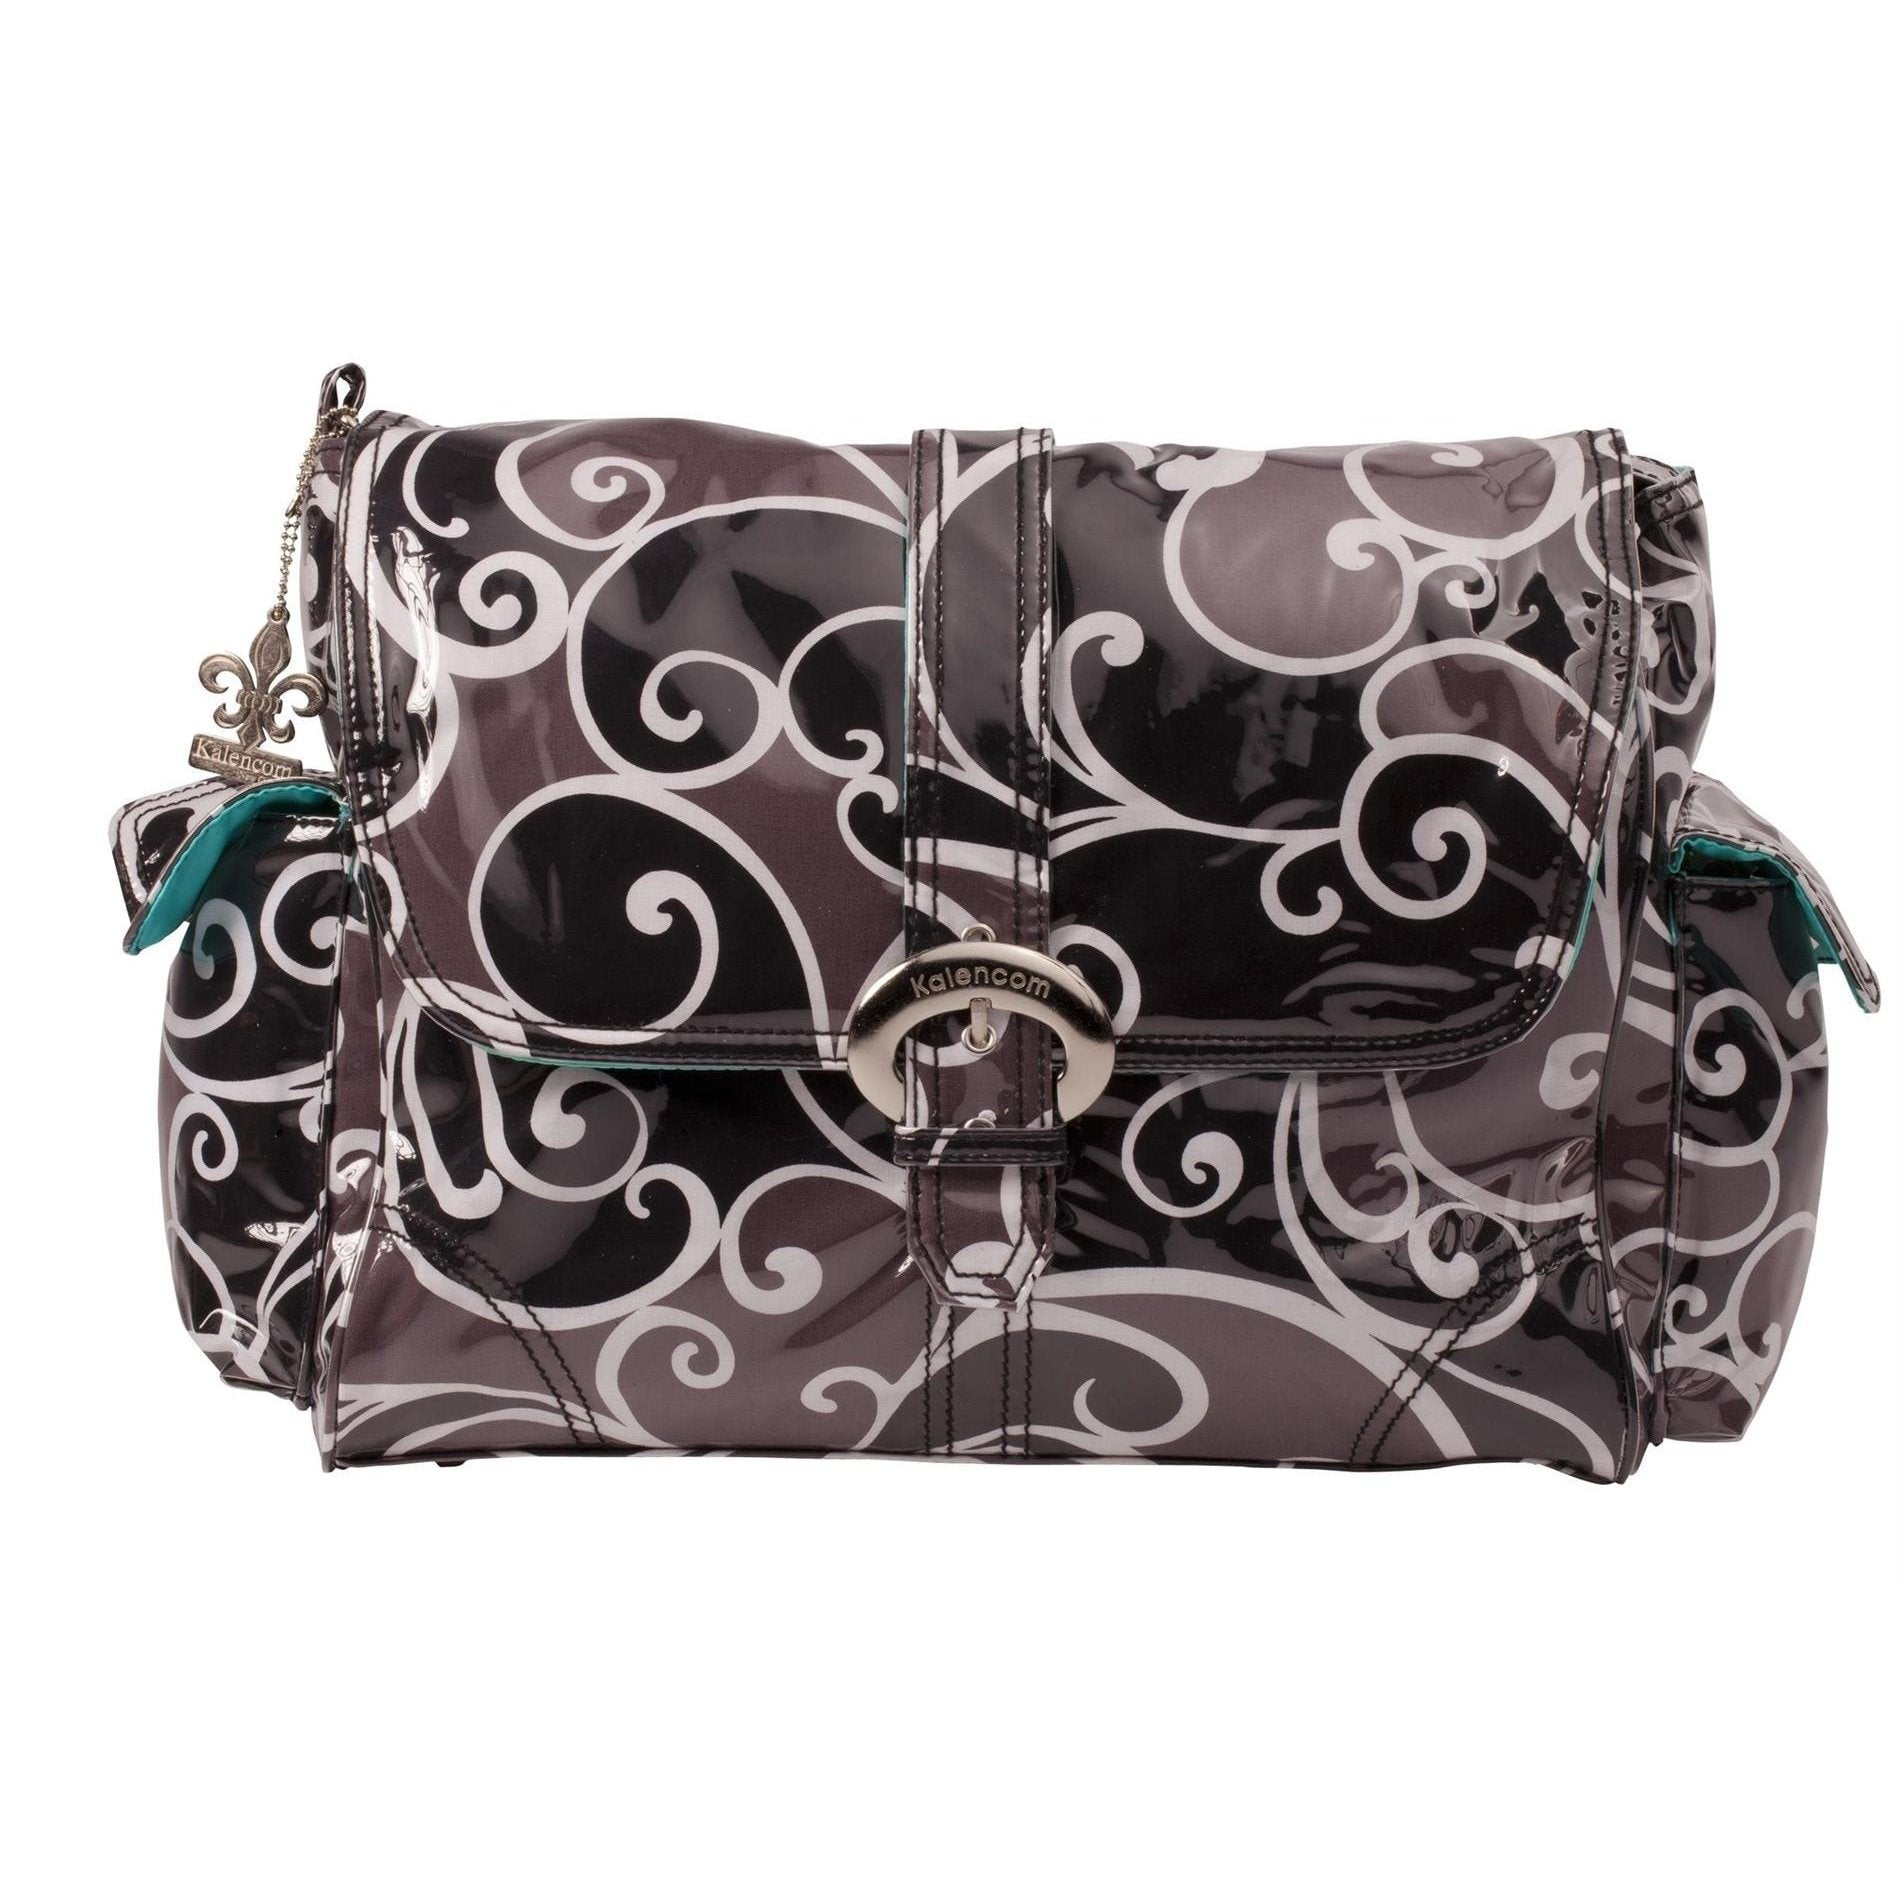 Surf Laminated Buckle Diaper Bag | Style 2960 - Kalencom-Diaper Bags-Default-Jack and Jill Boutique